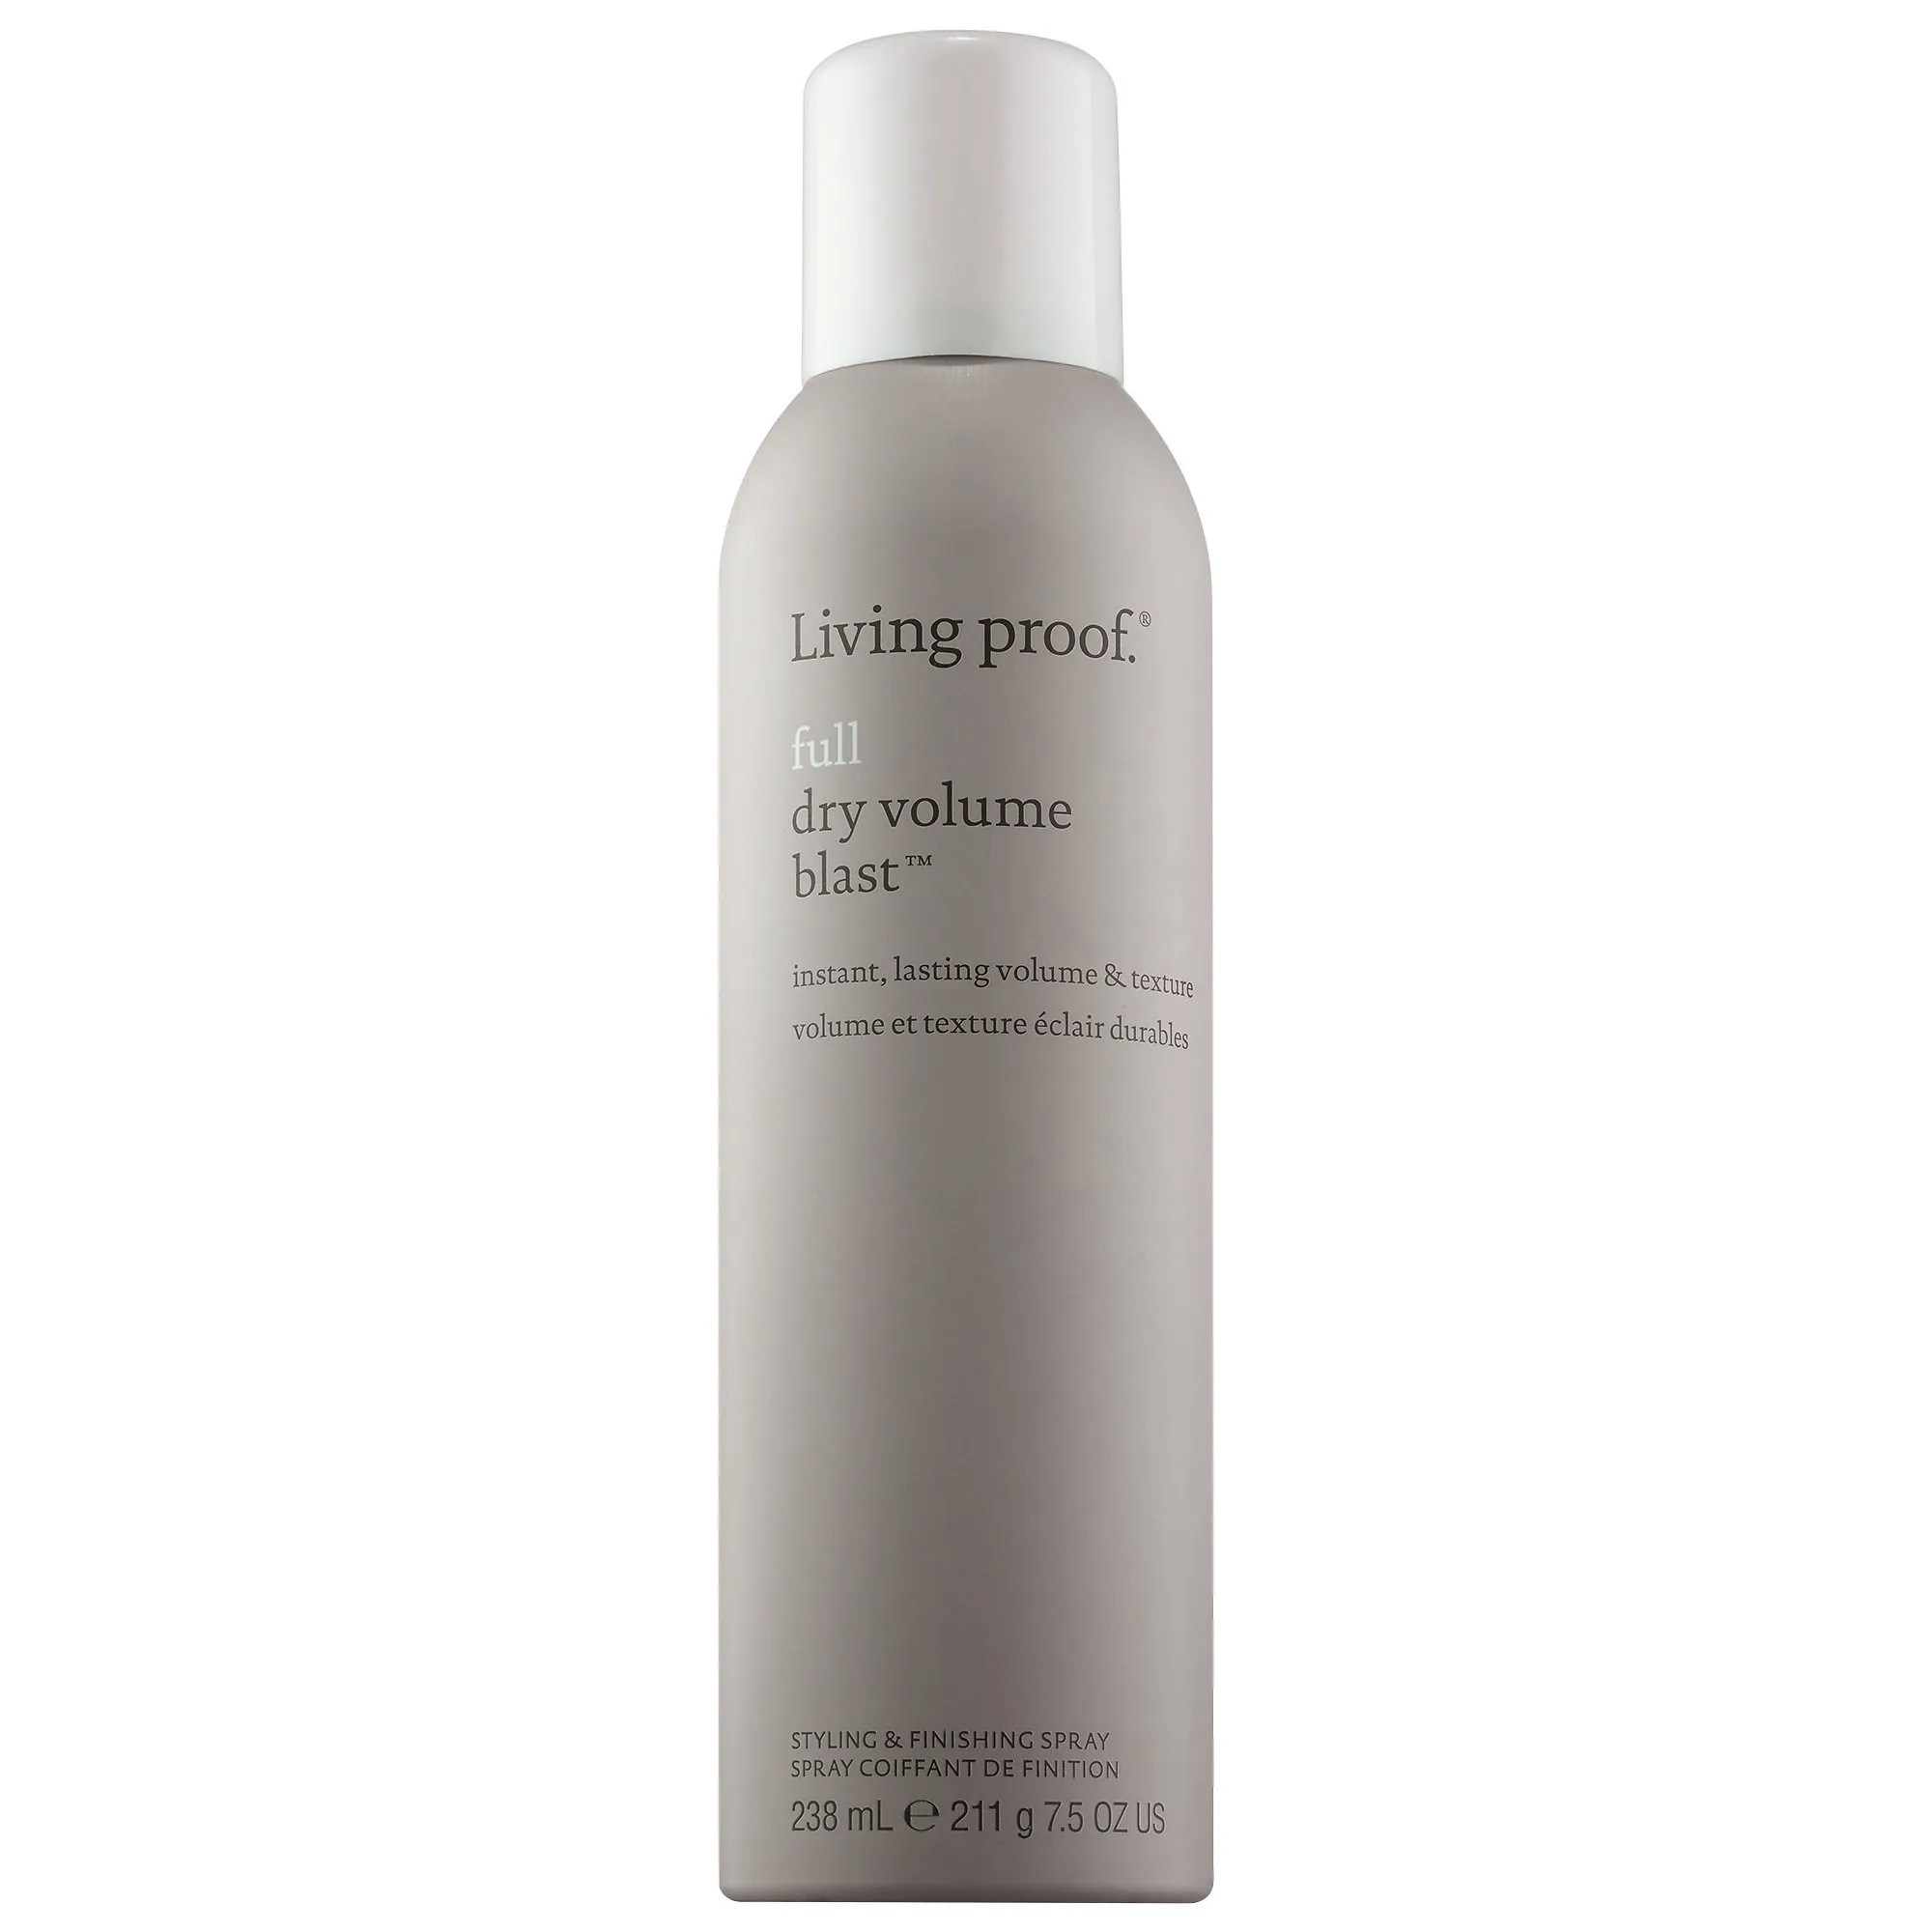 Living Proof Full Dry Volume Blast Review Allure